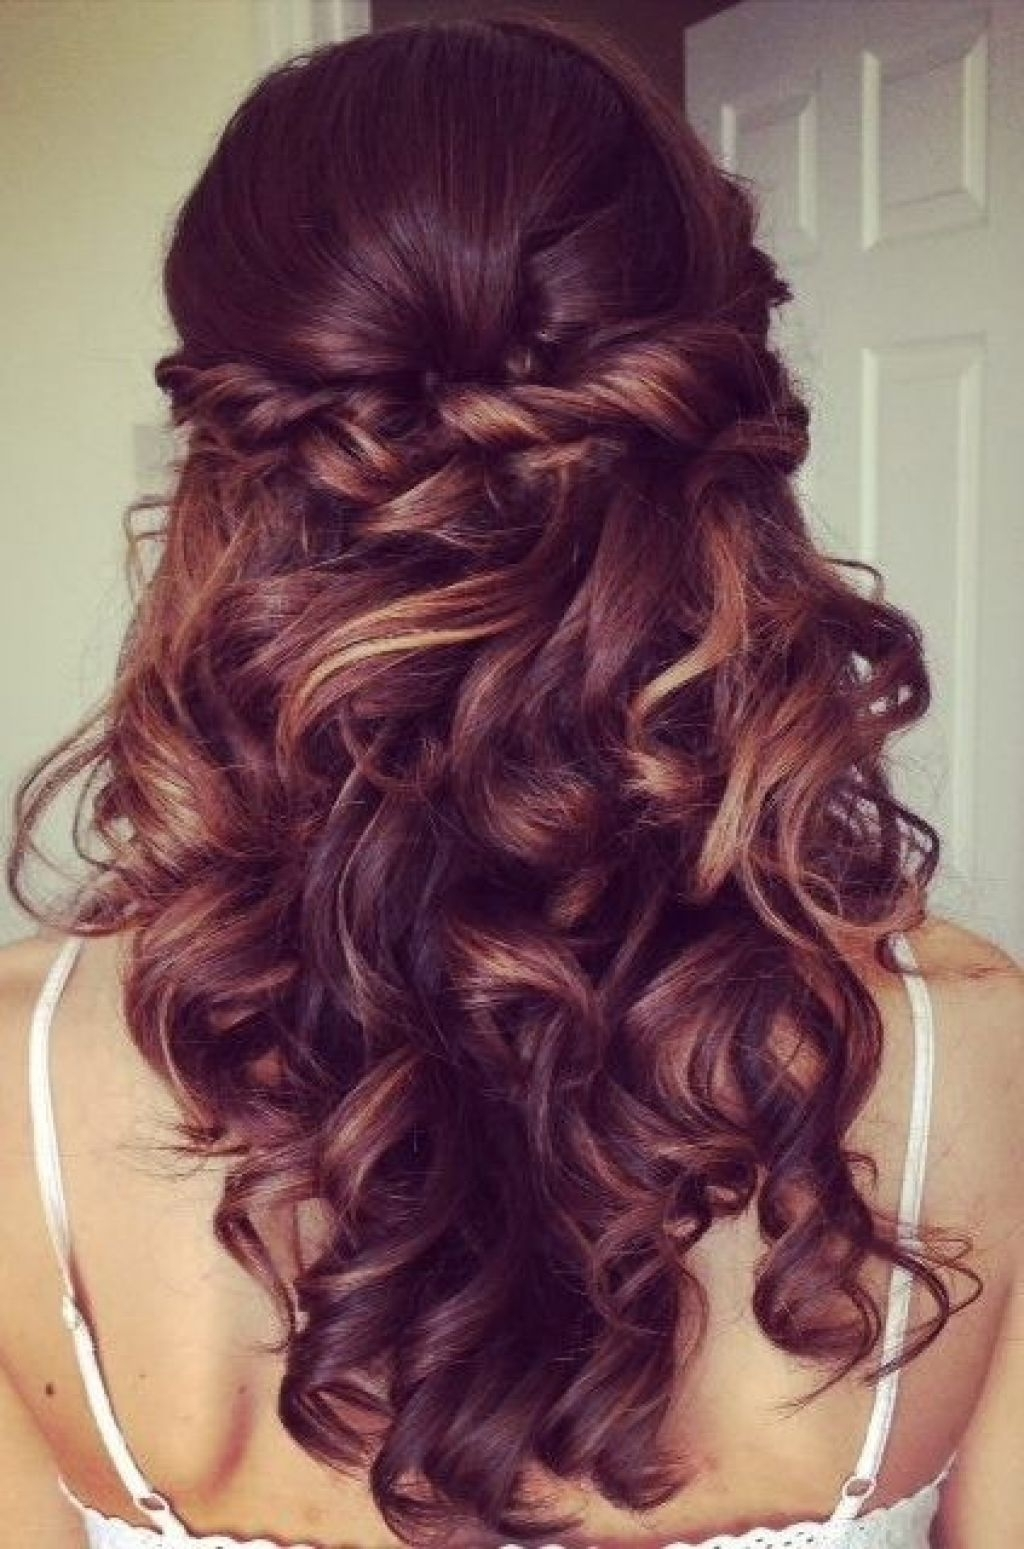 Curly Hairstyles Simple Hair Formal Cute Down Homecoming For Long Throughout Wavy Hair Updo Hairstyles (View 2 of 15)